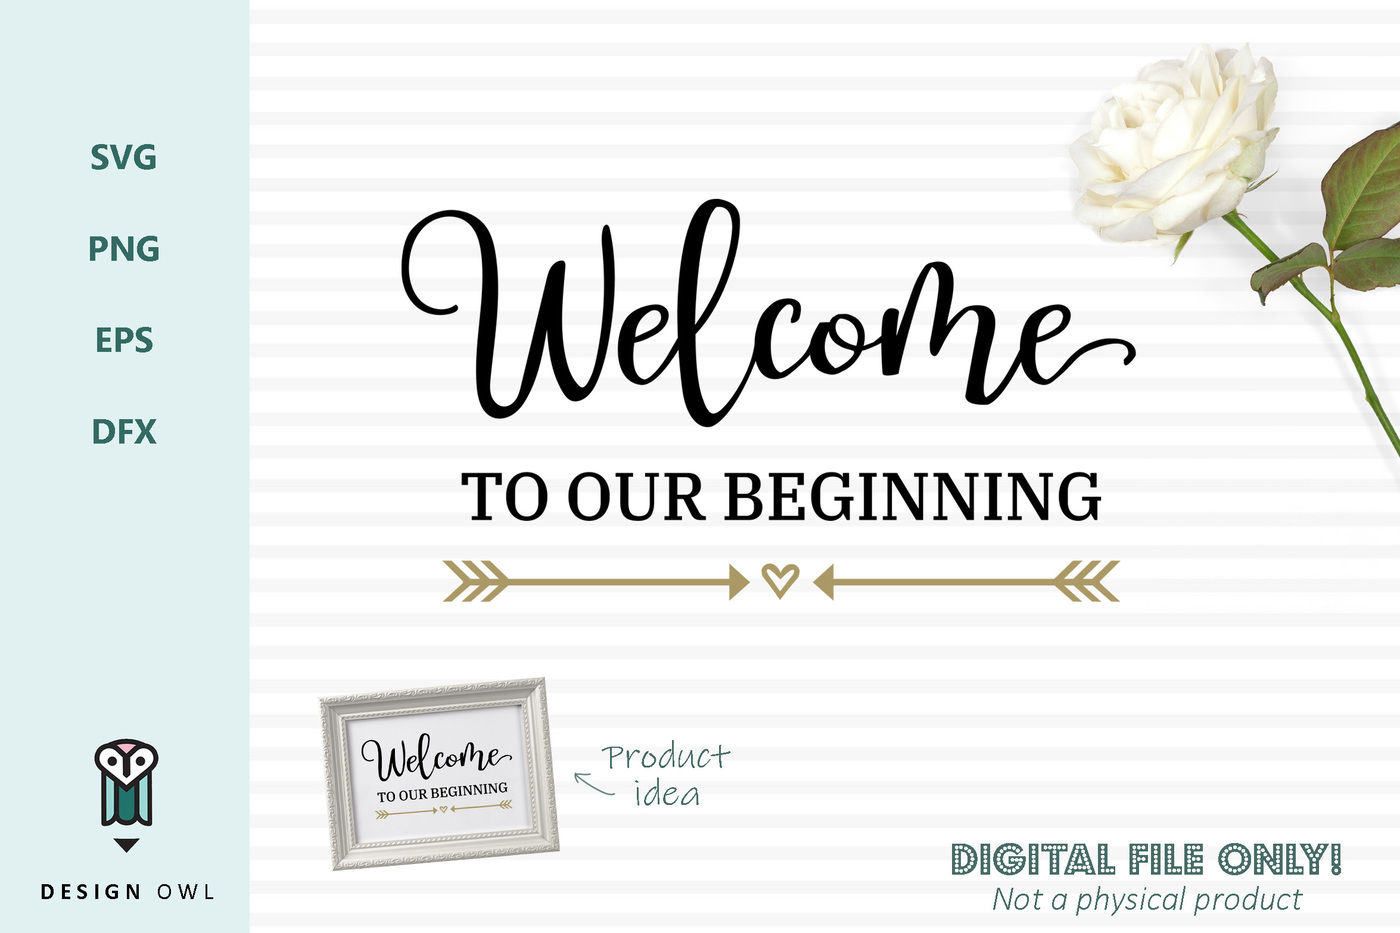 Welcome To Our Beginning Svg File By Design Owl Thehungryjpeg Com